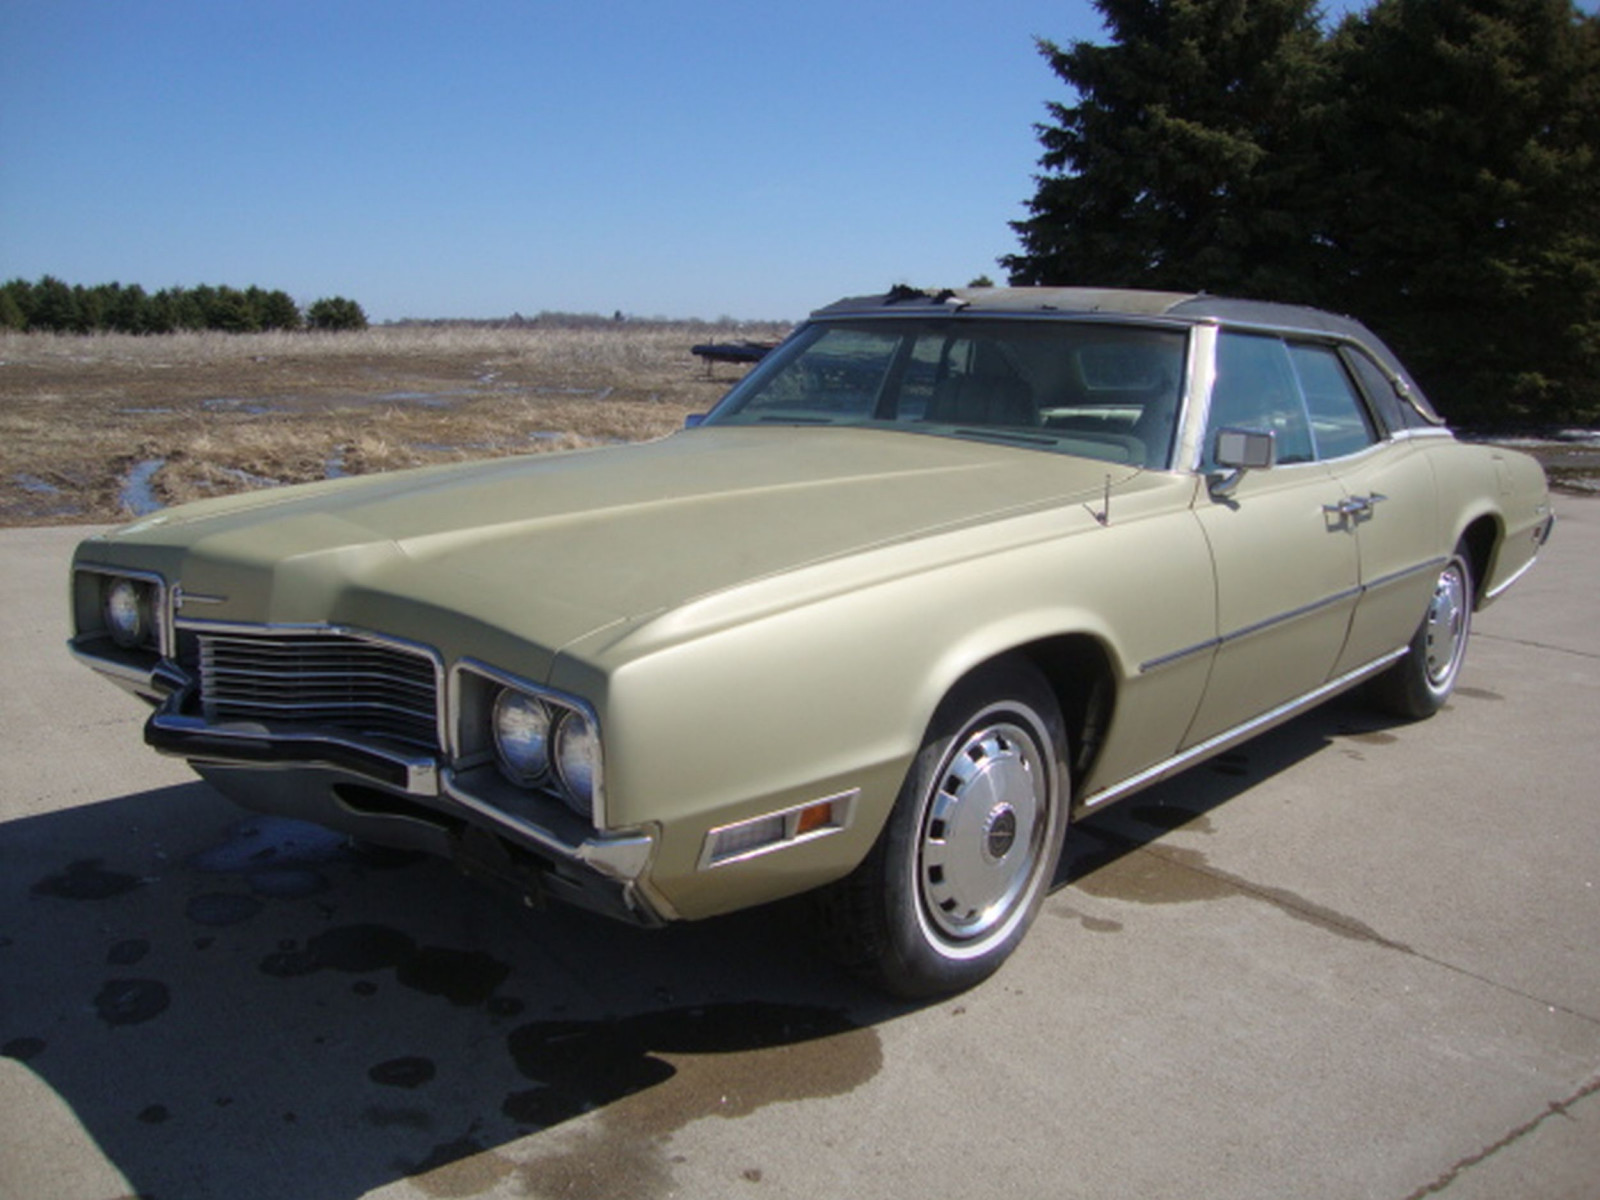 1971 Ford Thunderbird 4dr Sedan - Image 1